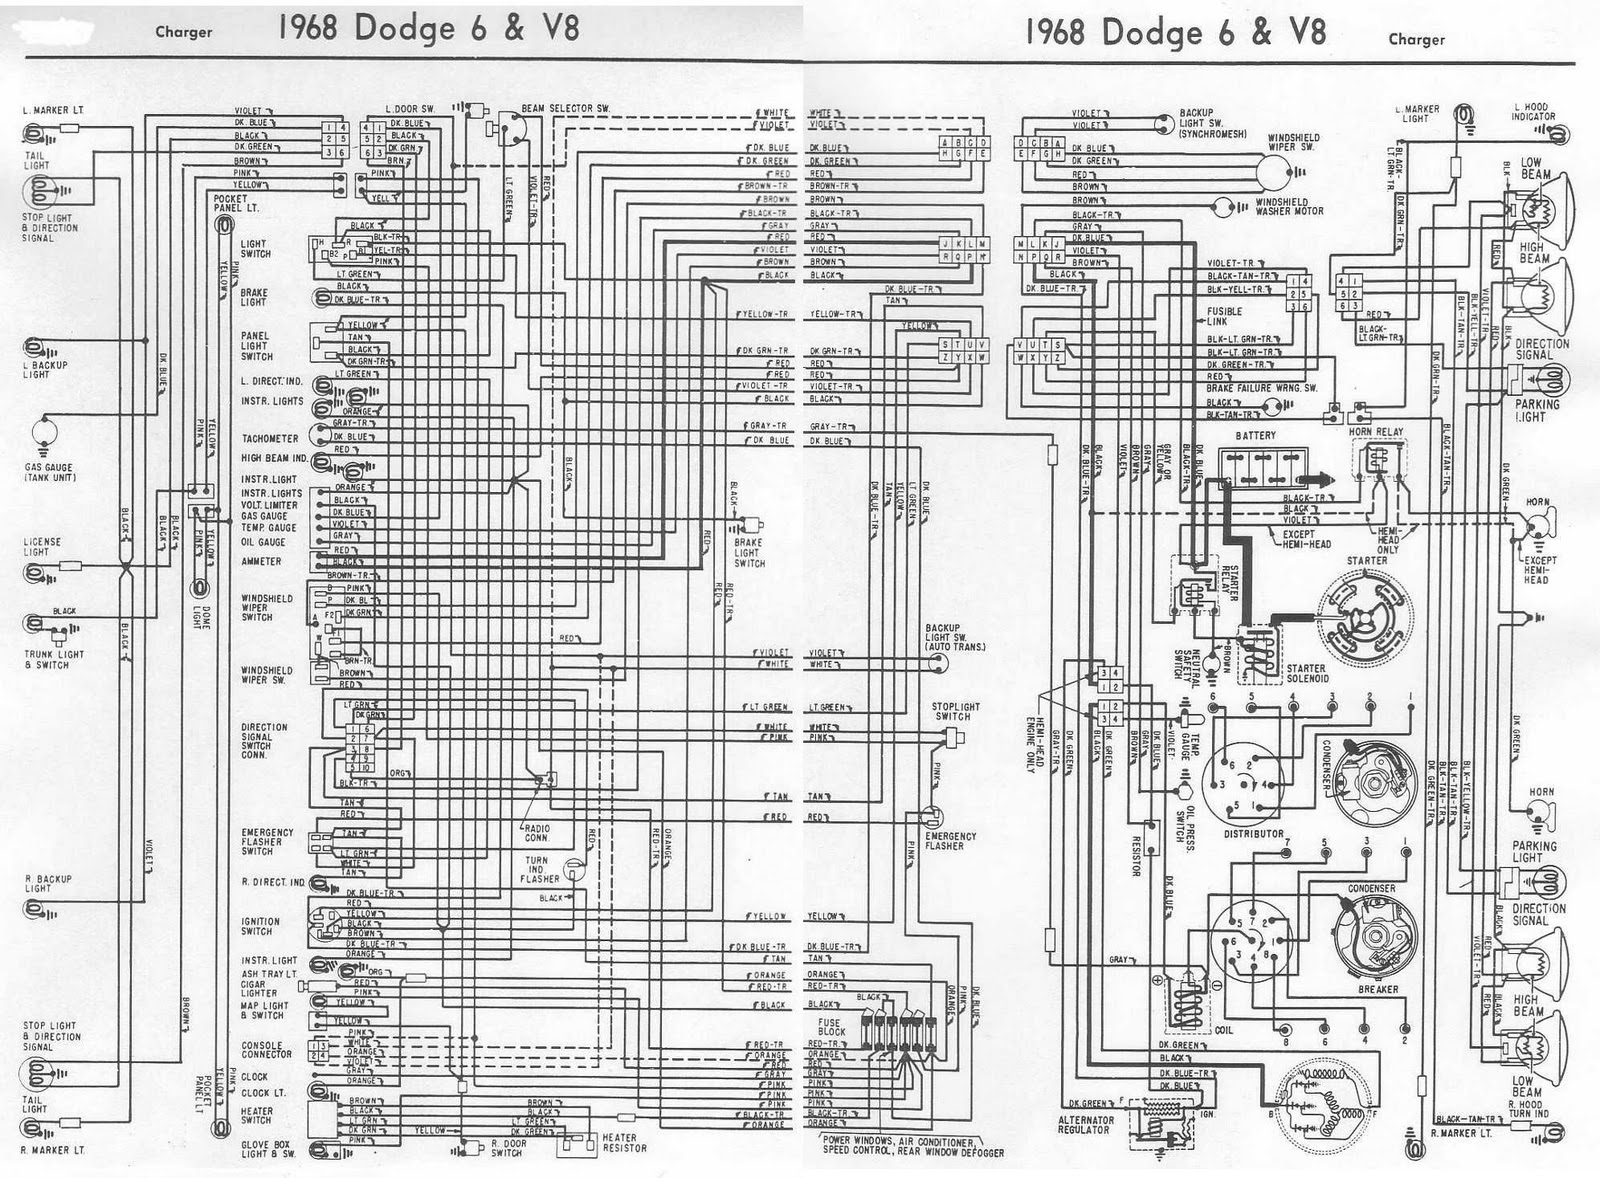 Dodge Charger 1968 6 And V8  plete on 67 camaro wiring diagram